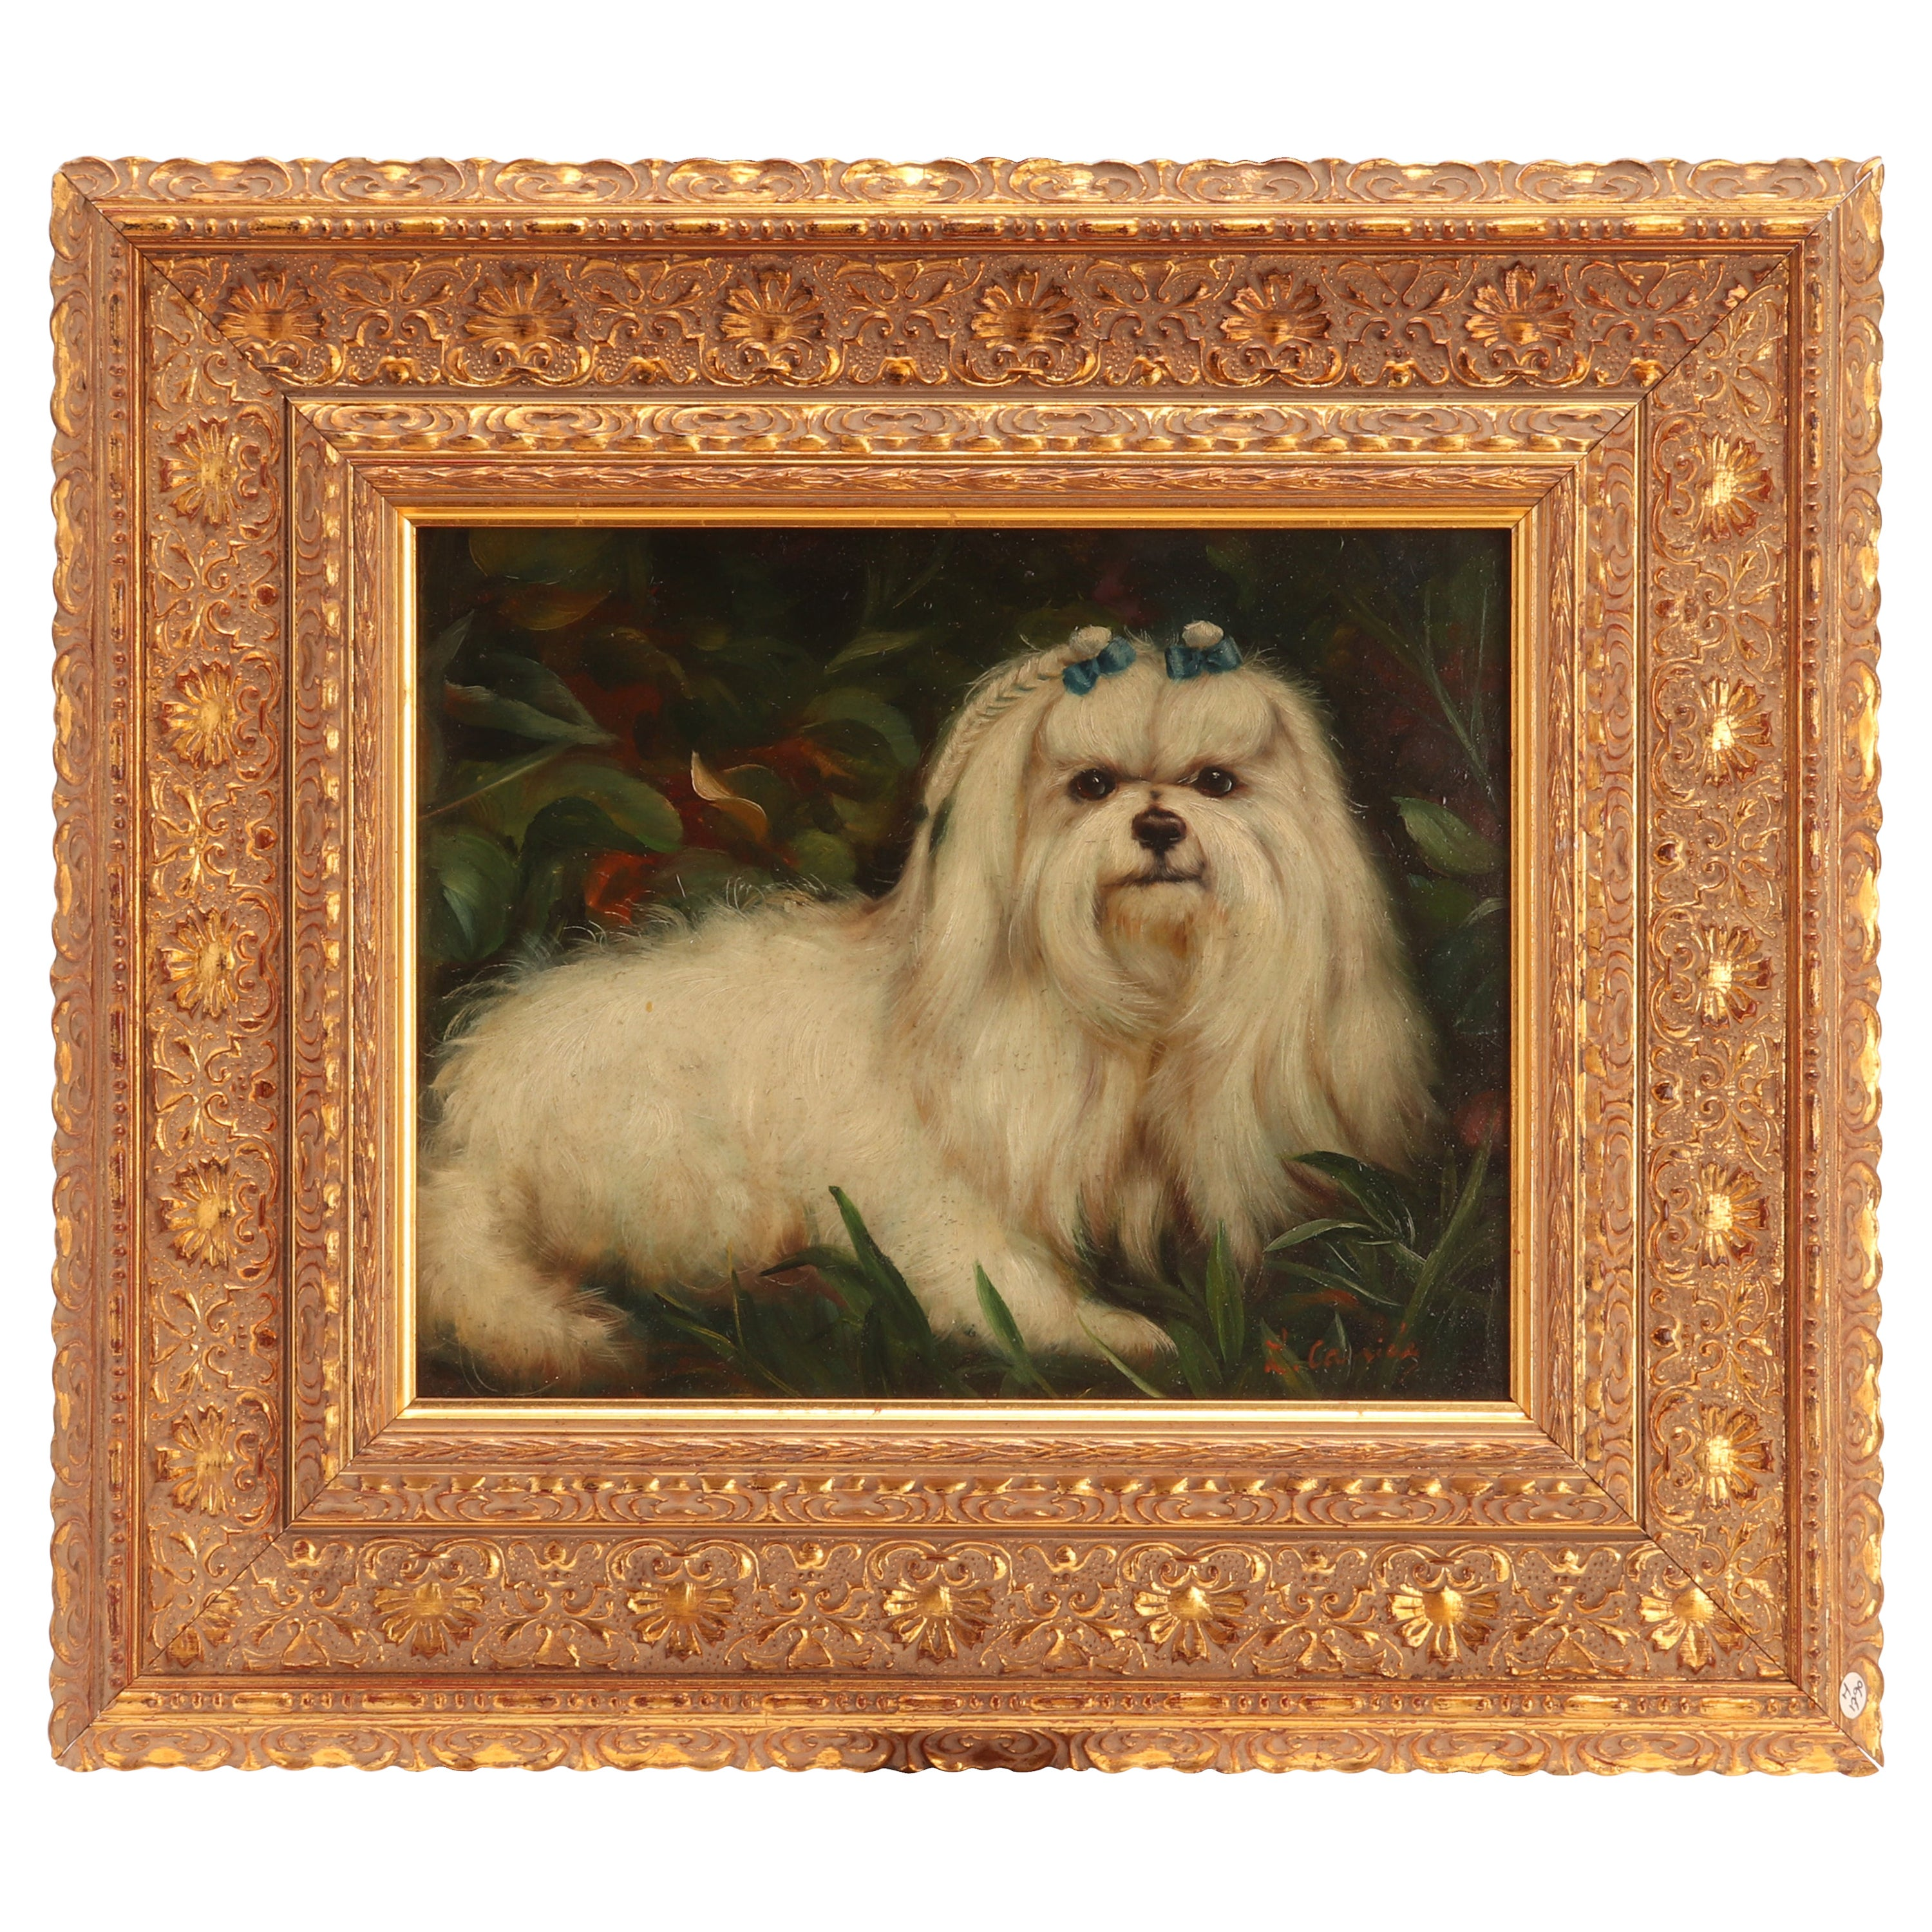 Painting Oil on Canvas Depicting a Maltese Dog, France, 1880, Dipinto